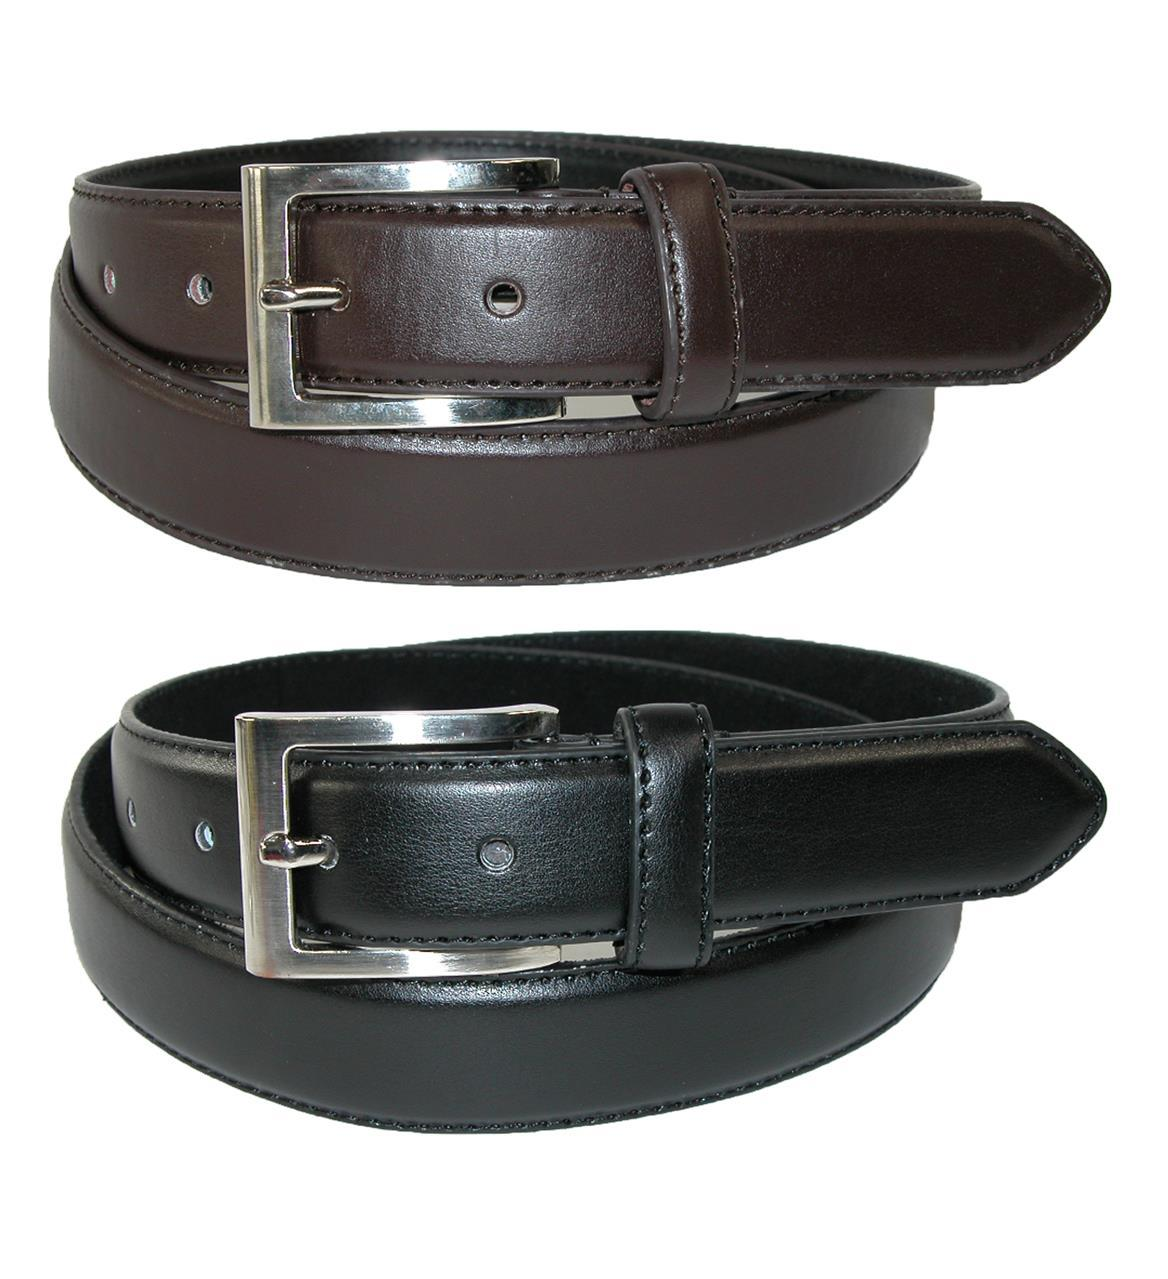 Ctm Mens Big & Tall Leather Dress Belt With Silver Buckle (pack Of 2)